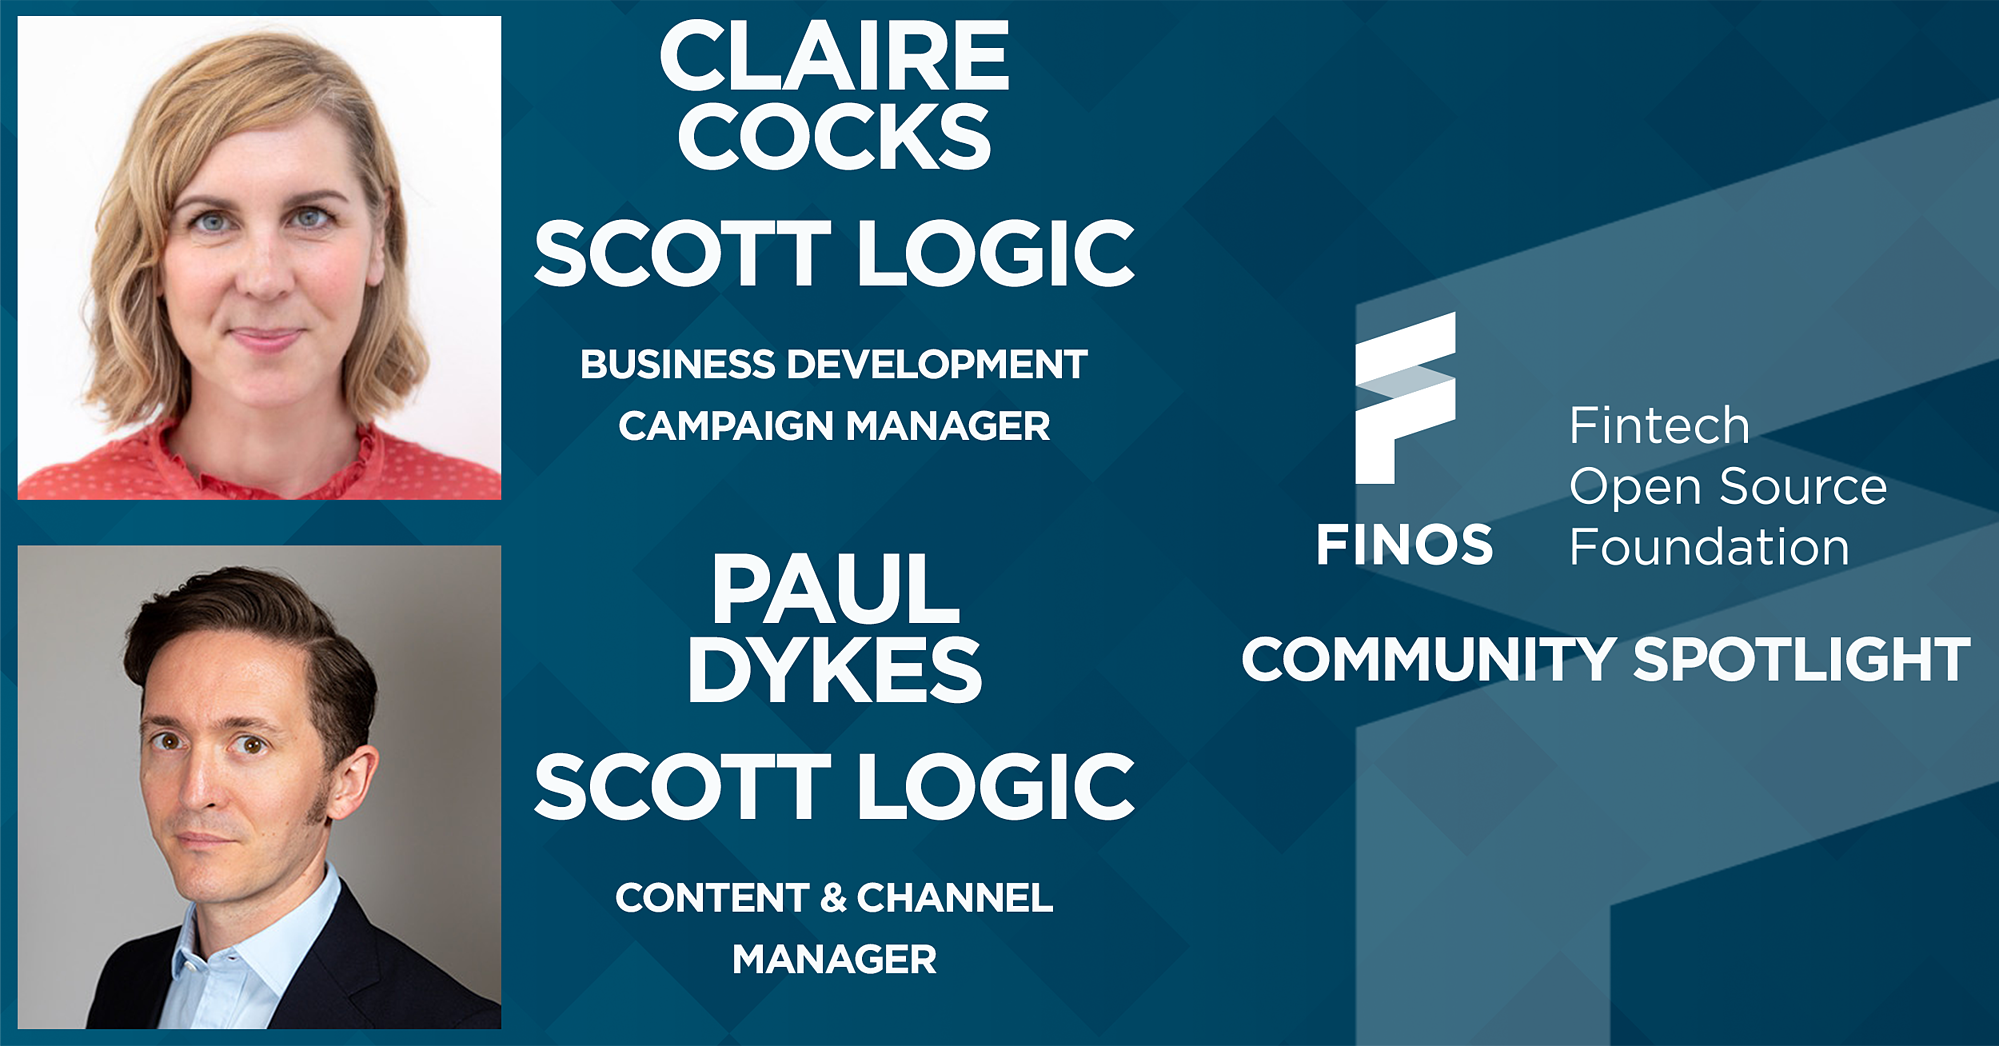 FINOS-community-spotlight-claire-cocks-paul-dykes